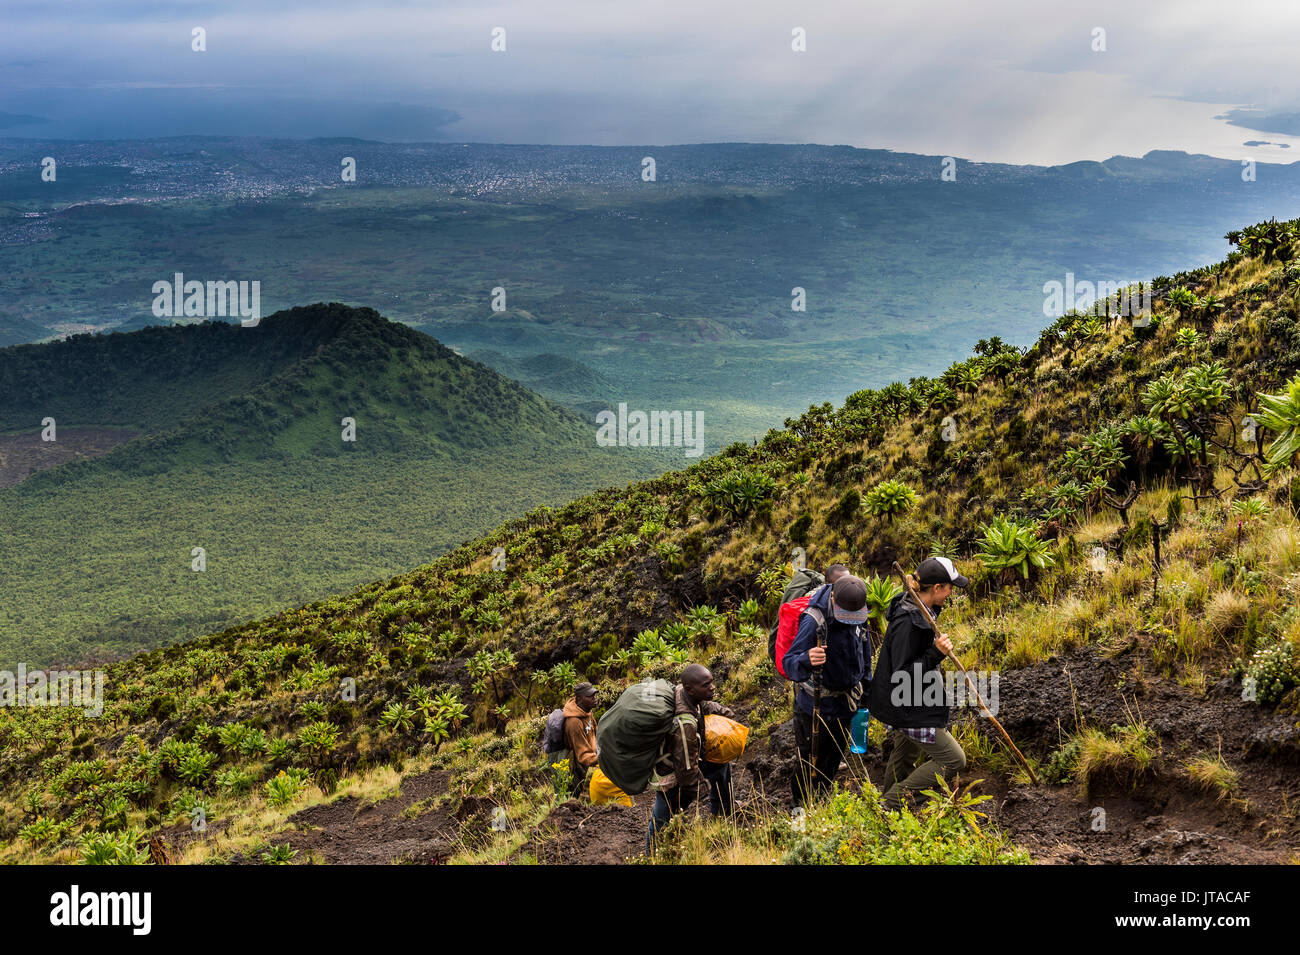 Trekkers on the steep slopes of Mount Nyiragongo, Virunga National Park, Democratic Republic of the Congo, Africa - Stock Image